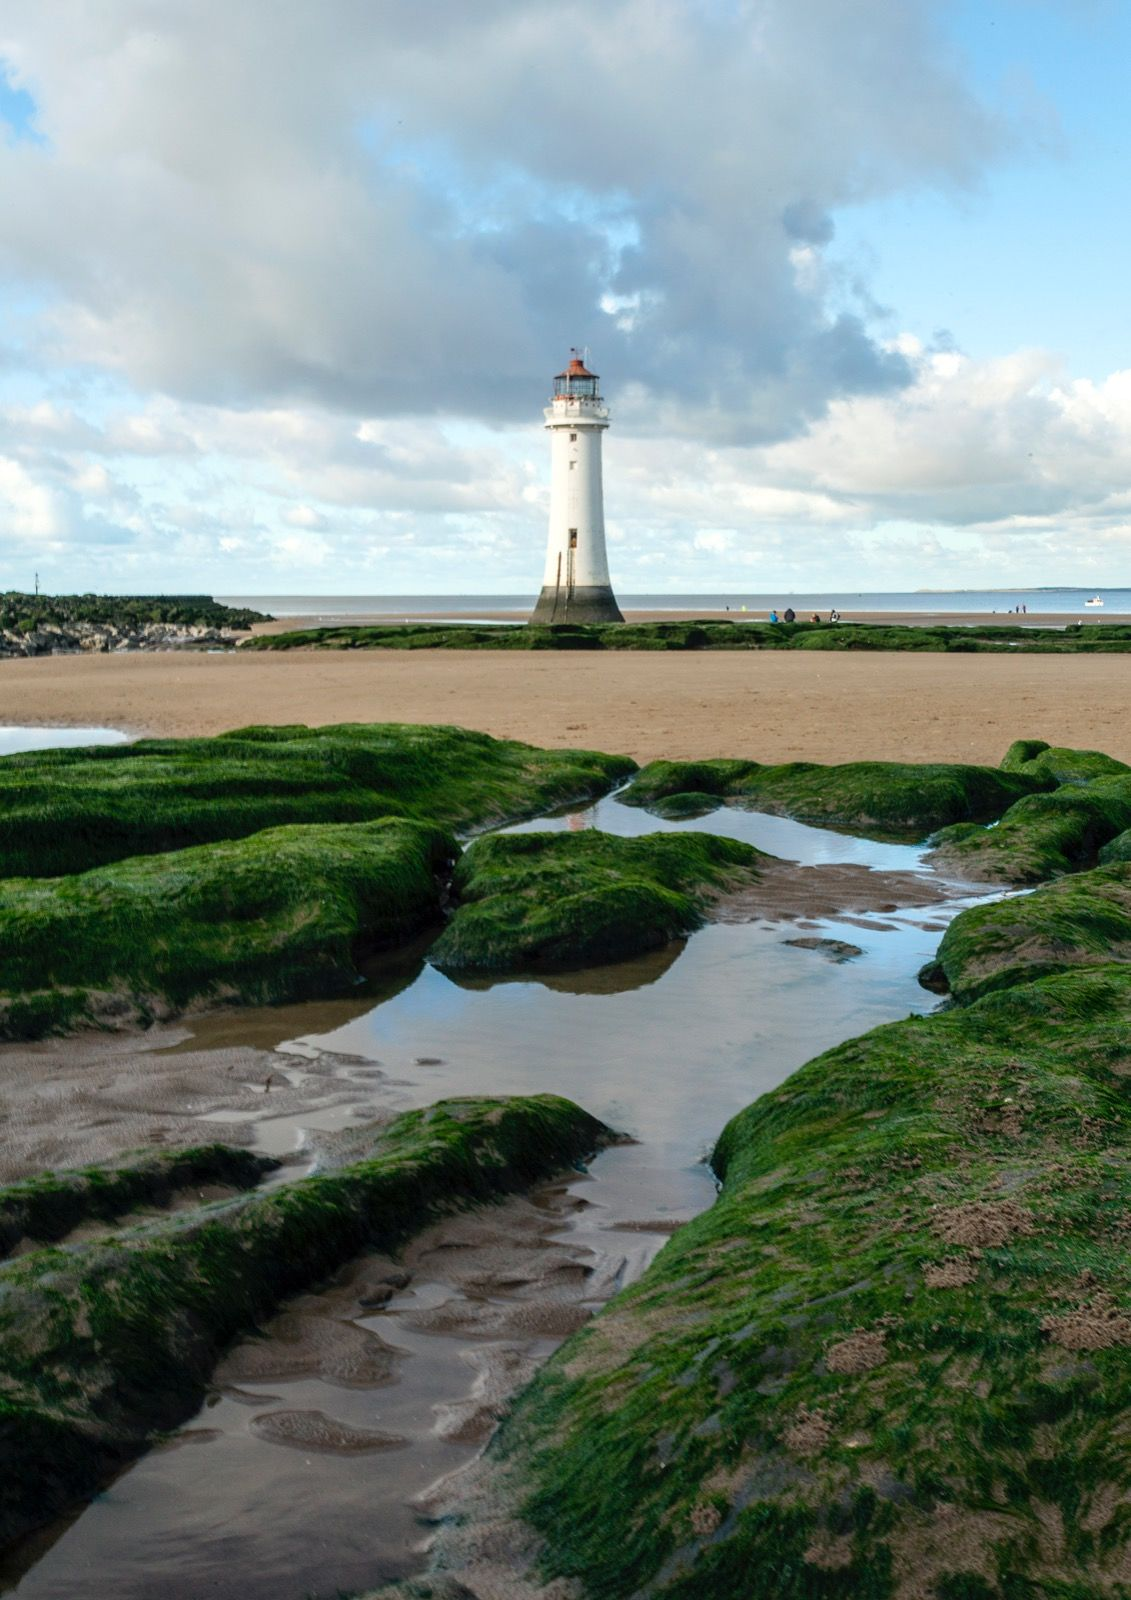 Lighthouse River Mersey